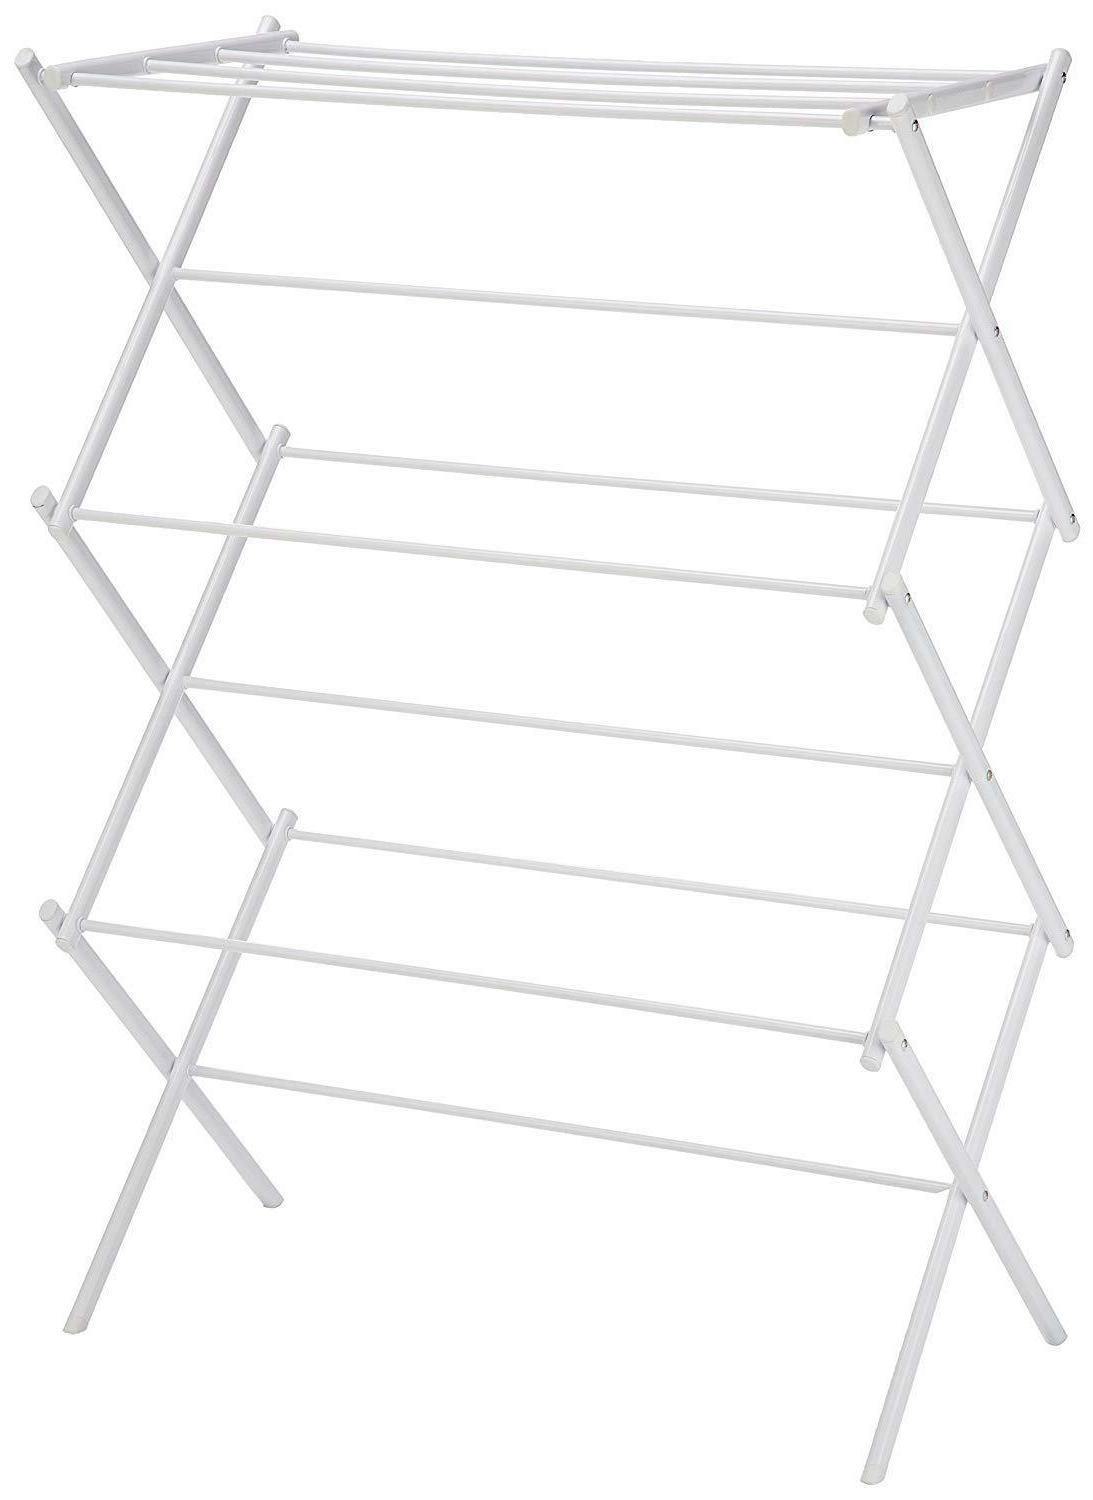 AmazonBasics Foldable Drying Rack - White - NEW Fast Deliver